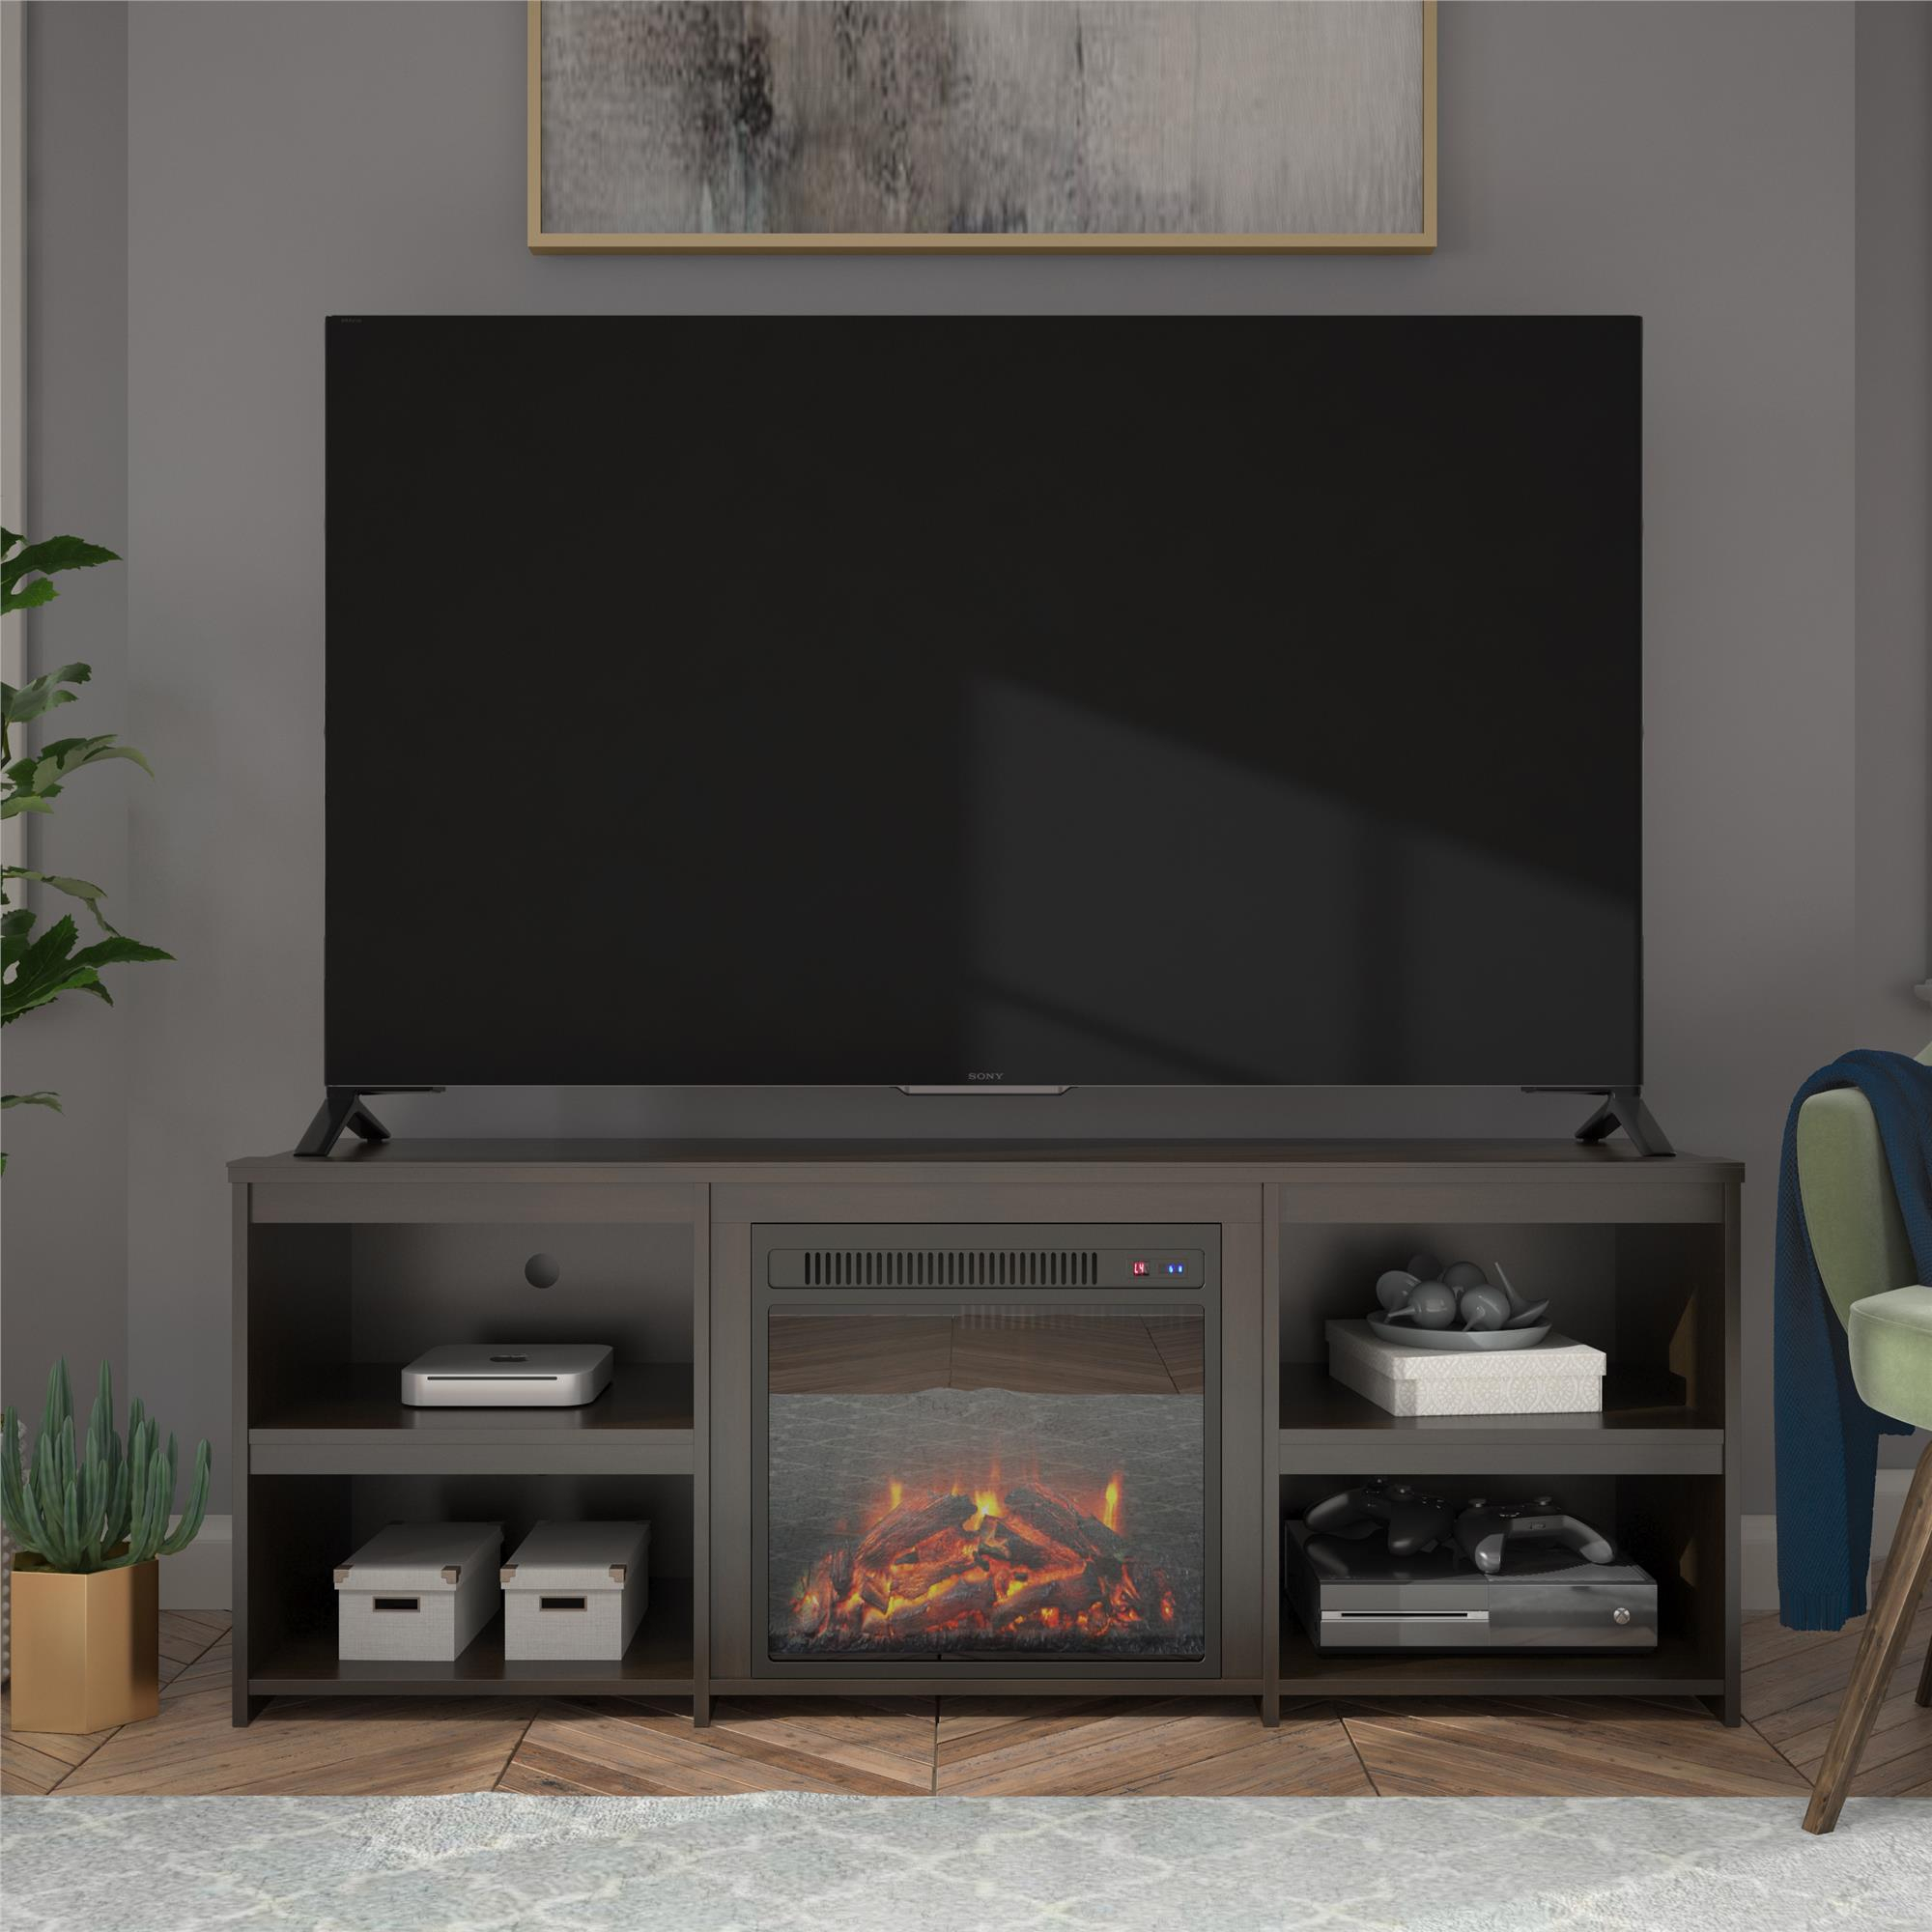 """Ameriwood Home Bannack Fireplace Tv Stand For Tvs Up To 65 Inside Grenier Tv Stands For Tvs Up To 65"""" (View 7 of 15)"""